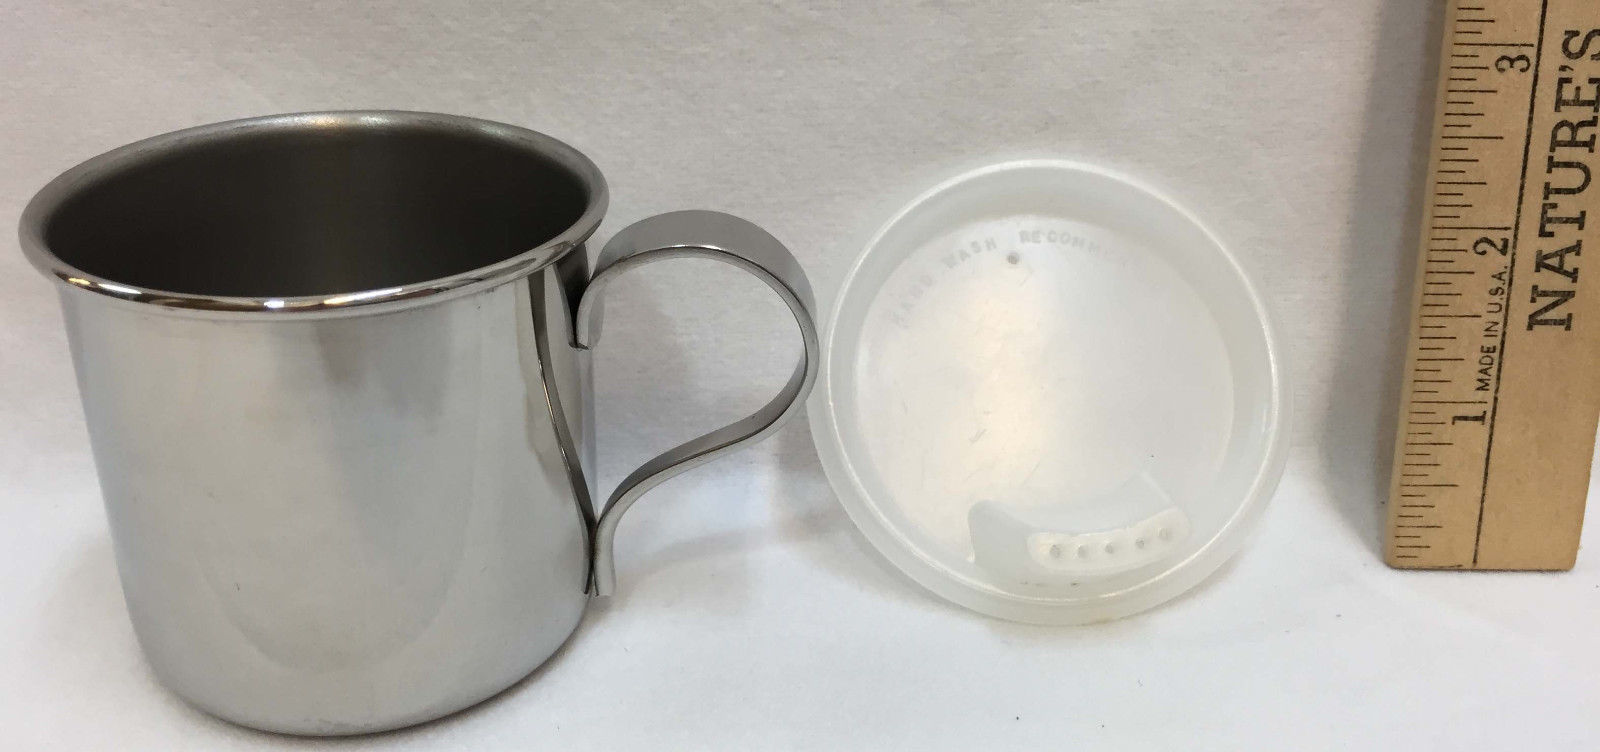 """Stainless Steel Sippy Cup Oneida Plastic Lid 3"""" Spill Proof USA Made Mug w/ Box"""